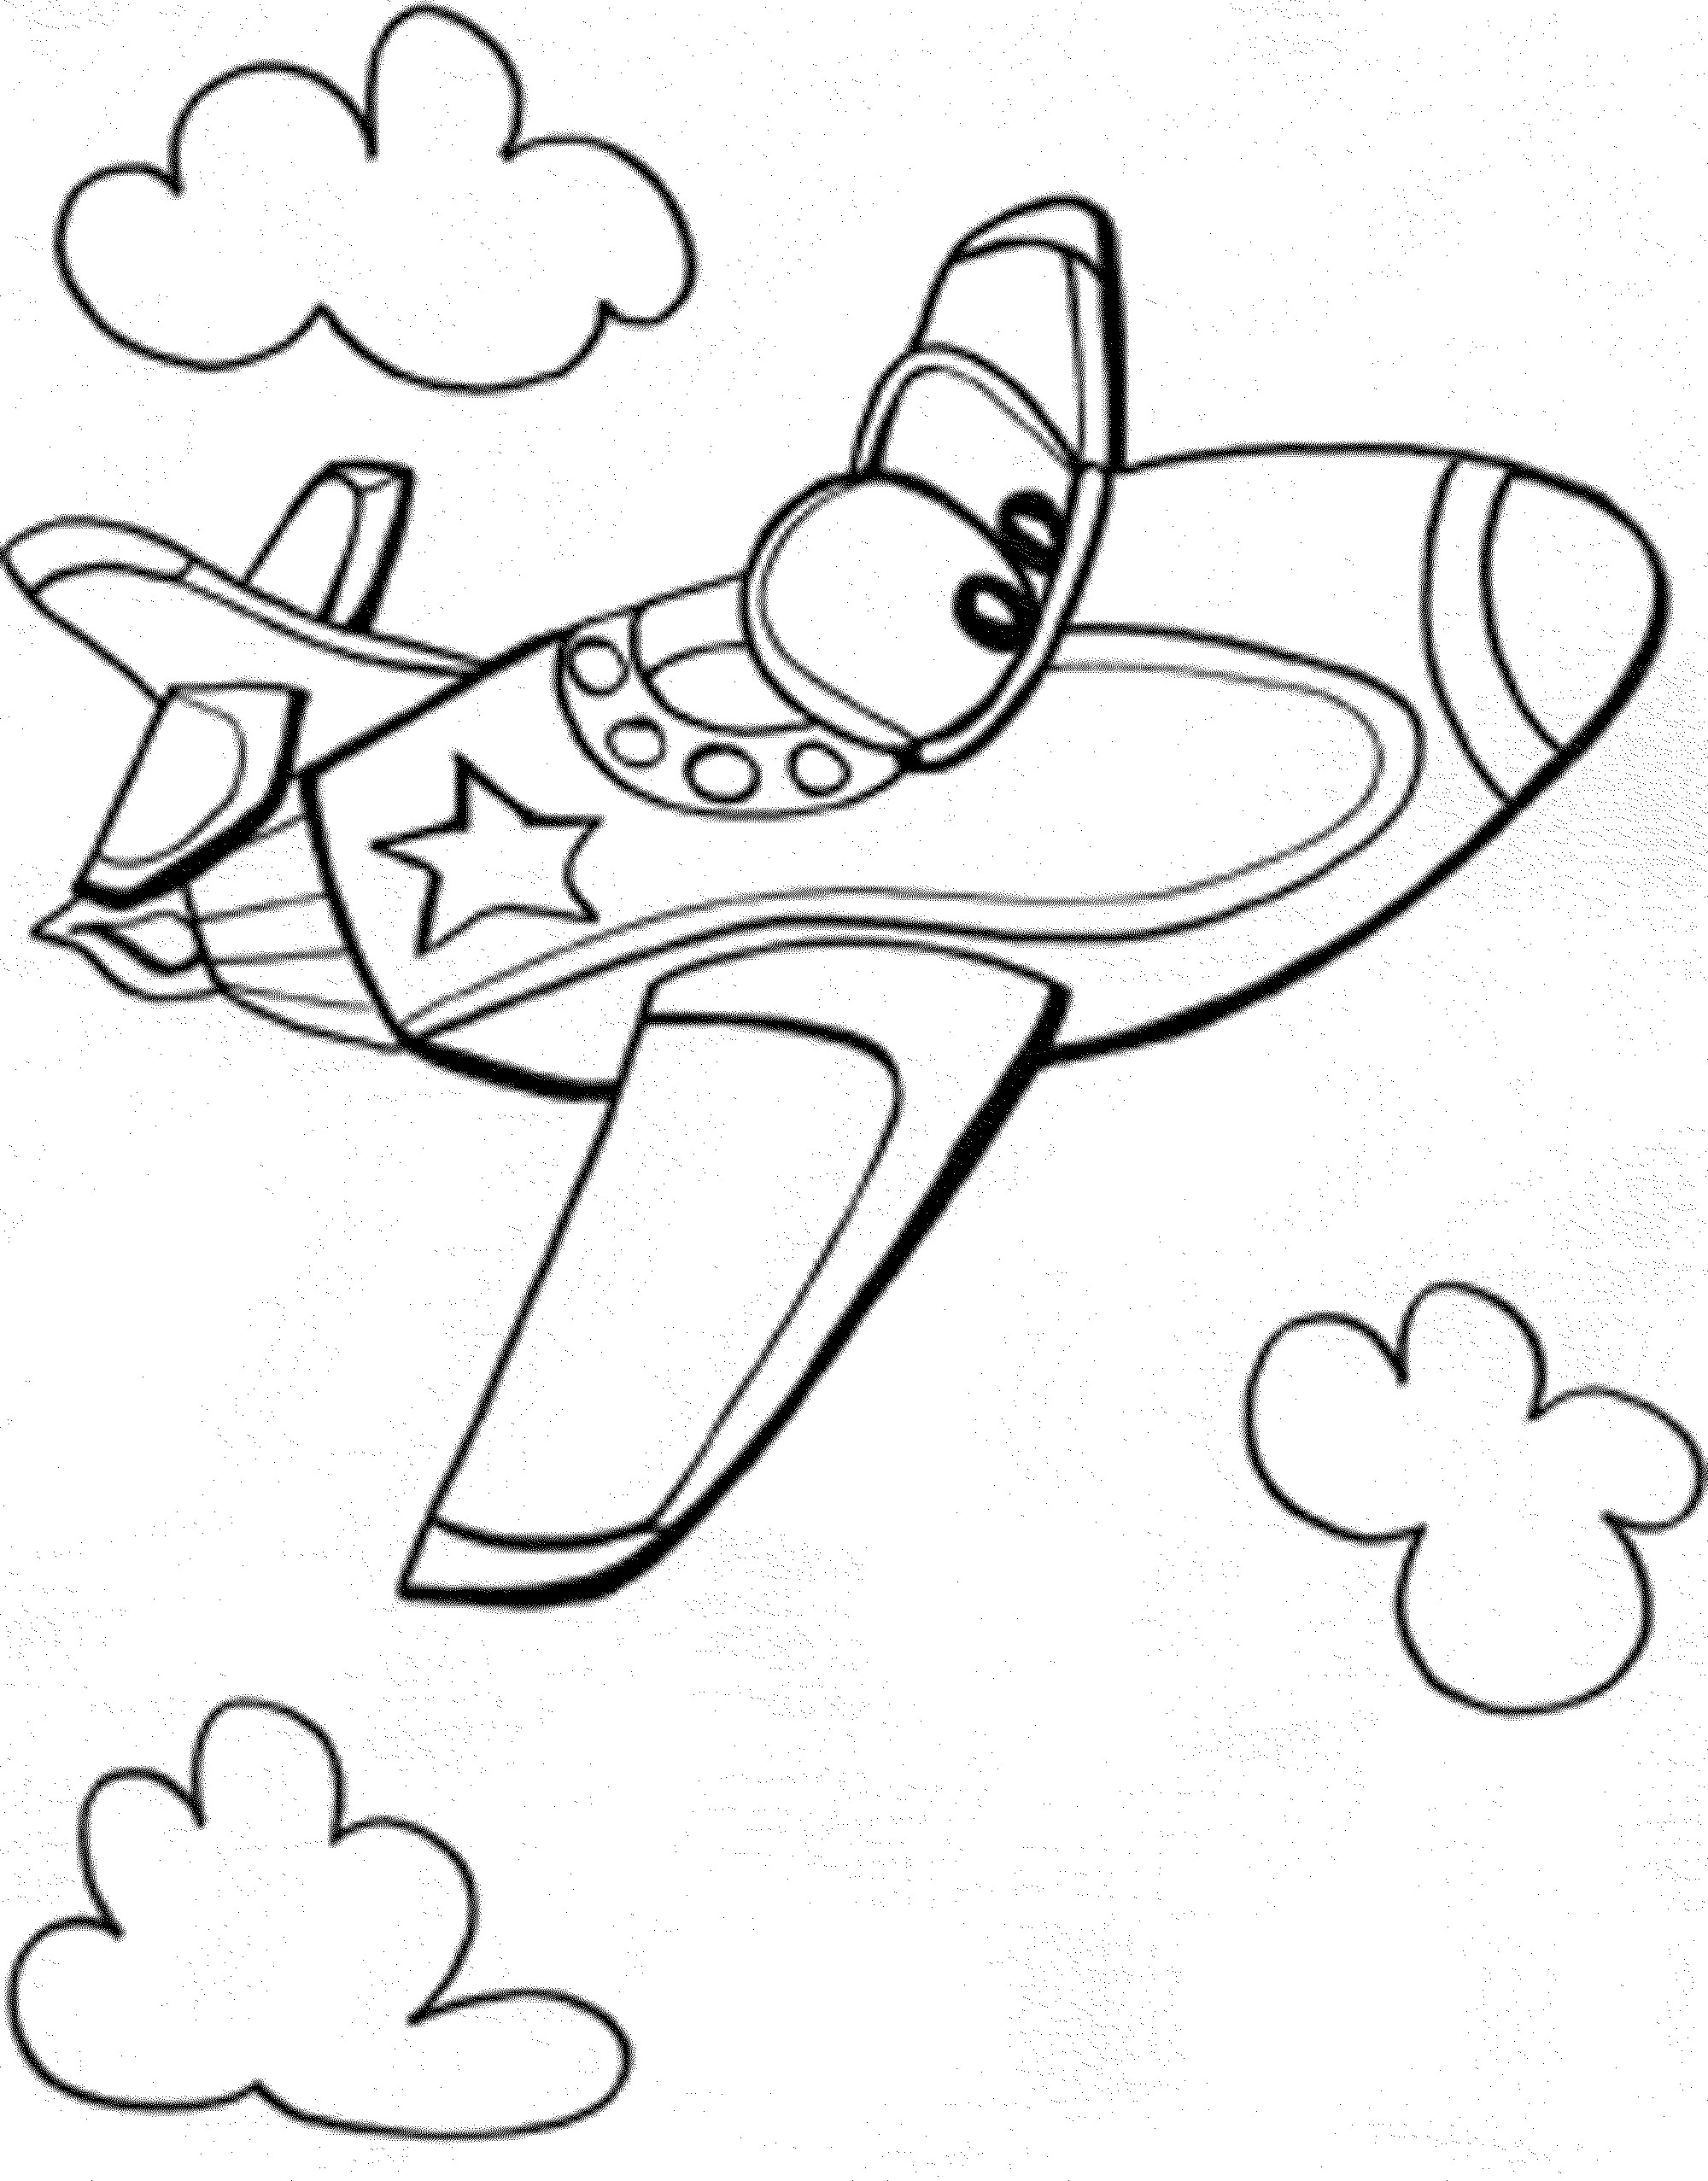 Jet Coloring Pages For Kids